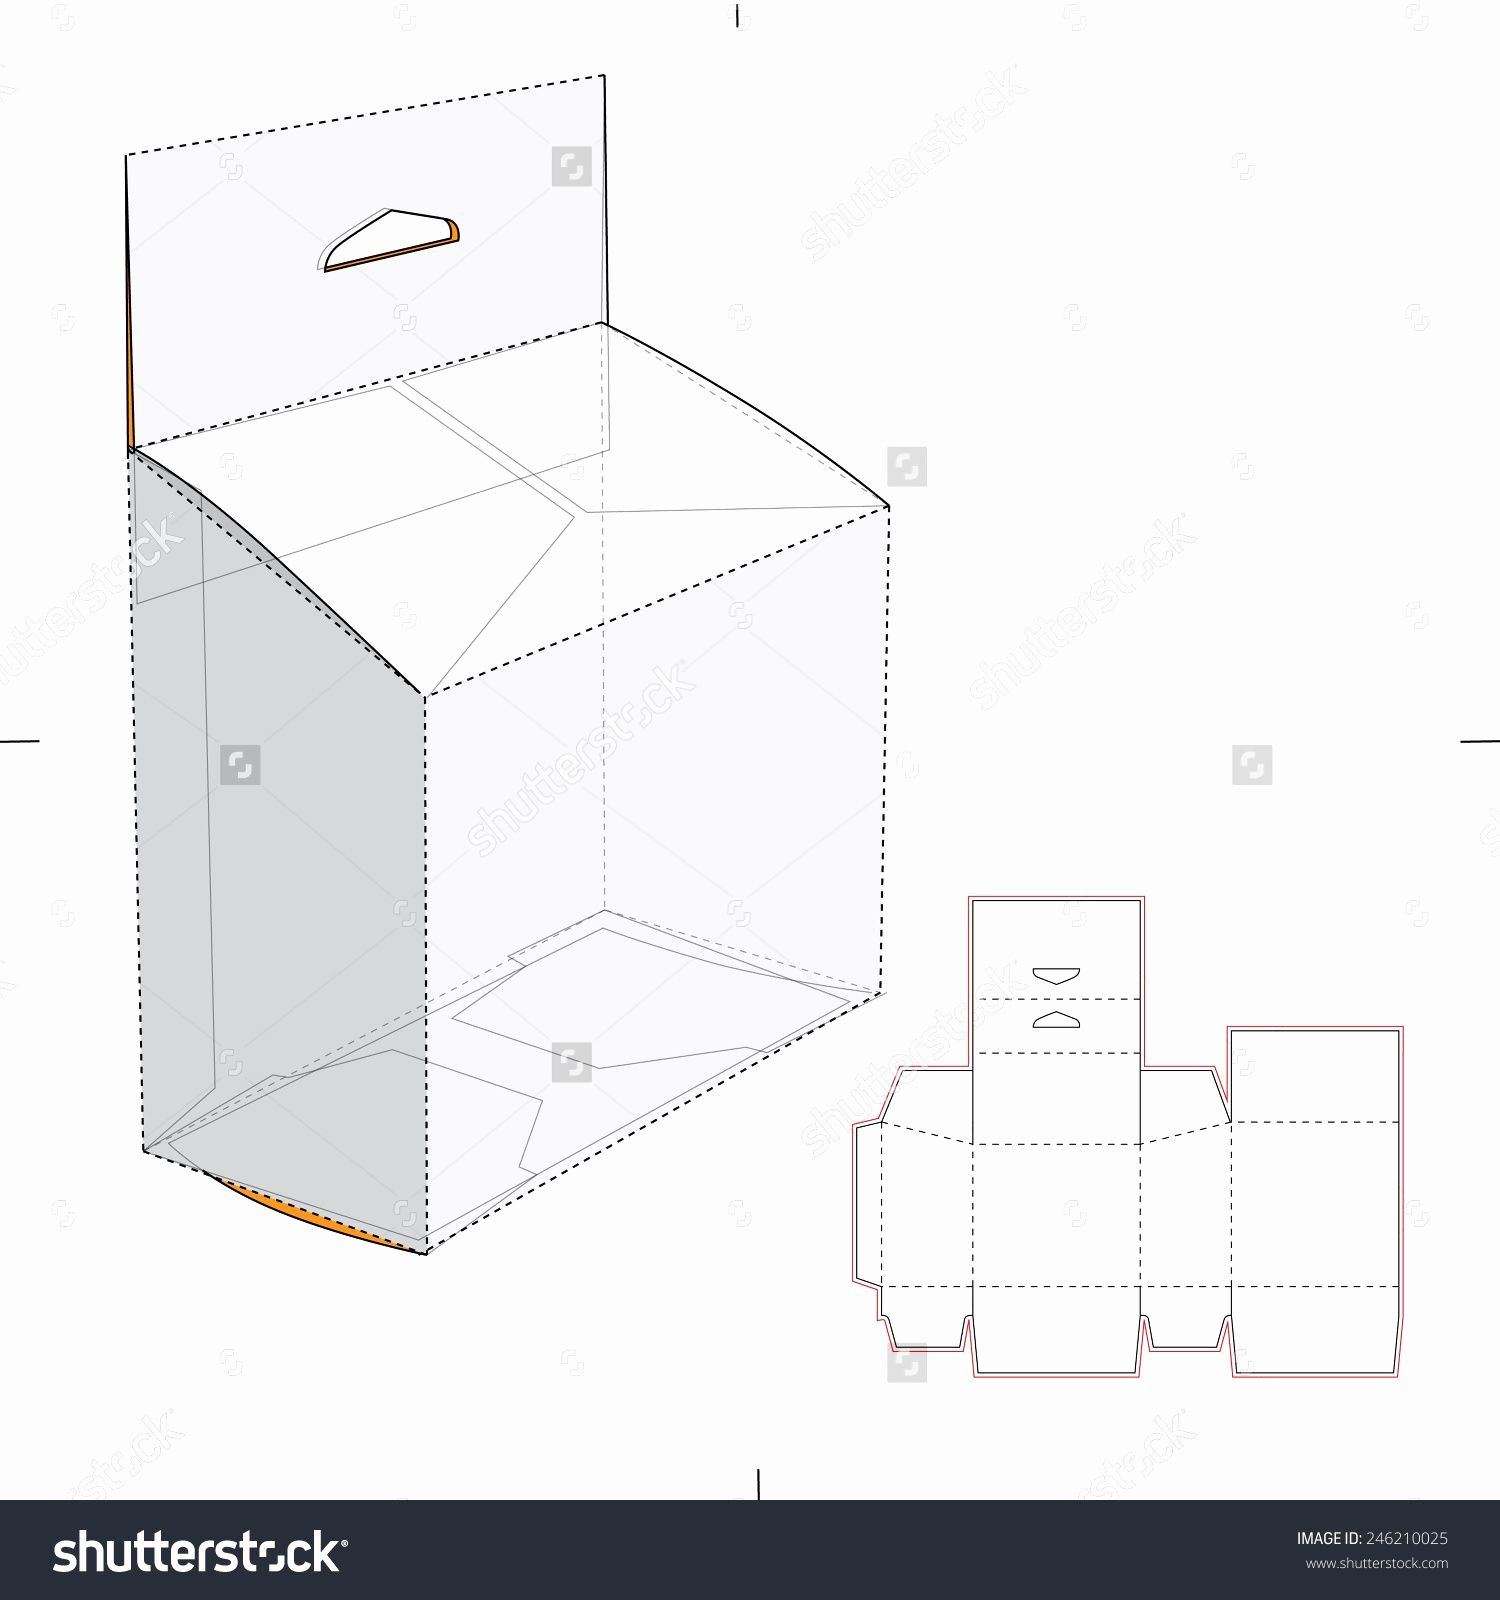 Die Cut Box Template Fresh Slanted Box with Hang Tag and Die Cut Template Stock